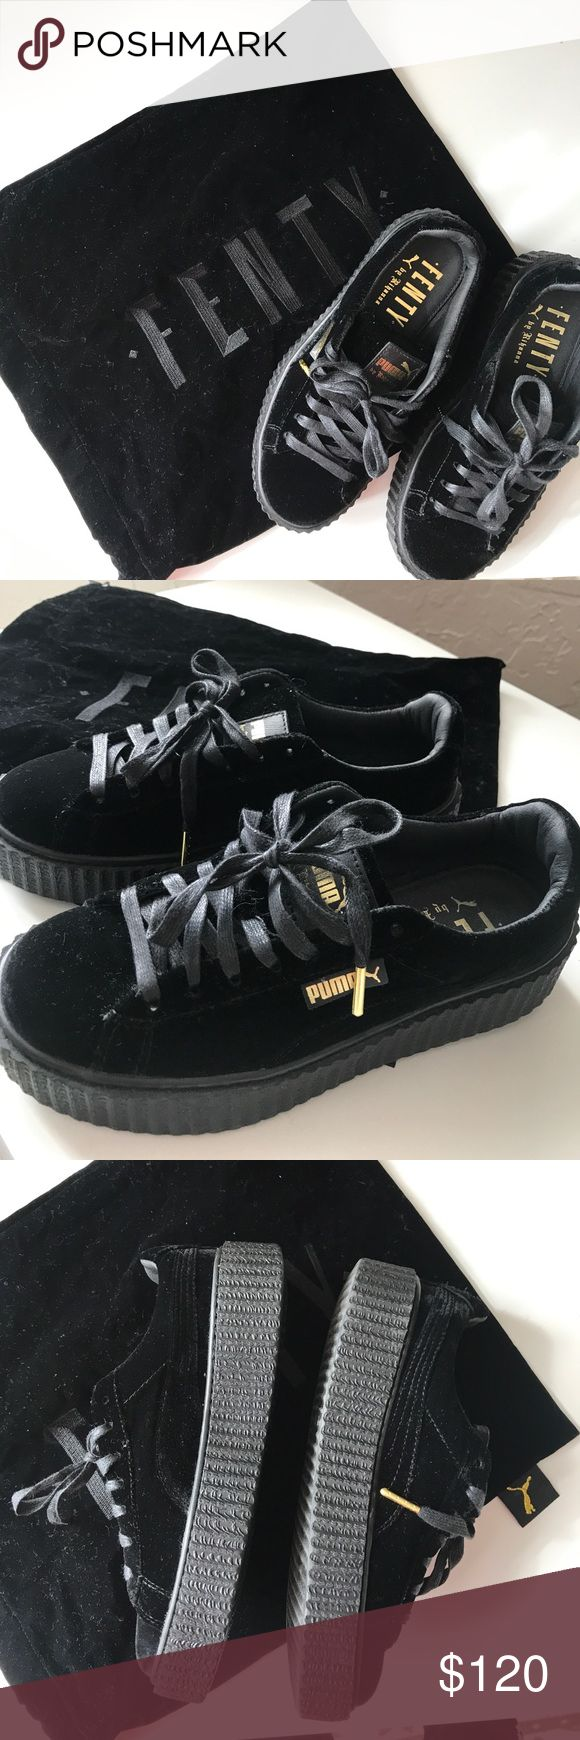 Black Velvet Fenty by Rihanna Creepers - Puma Black velvet creepers. Never worn. No box, but comes with dust bag. Size 7 US women's. Puma Shoes Sneakers